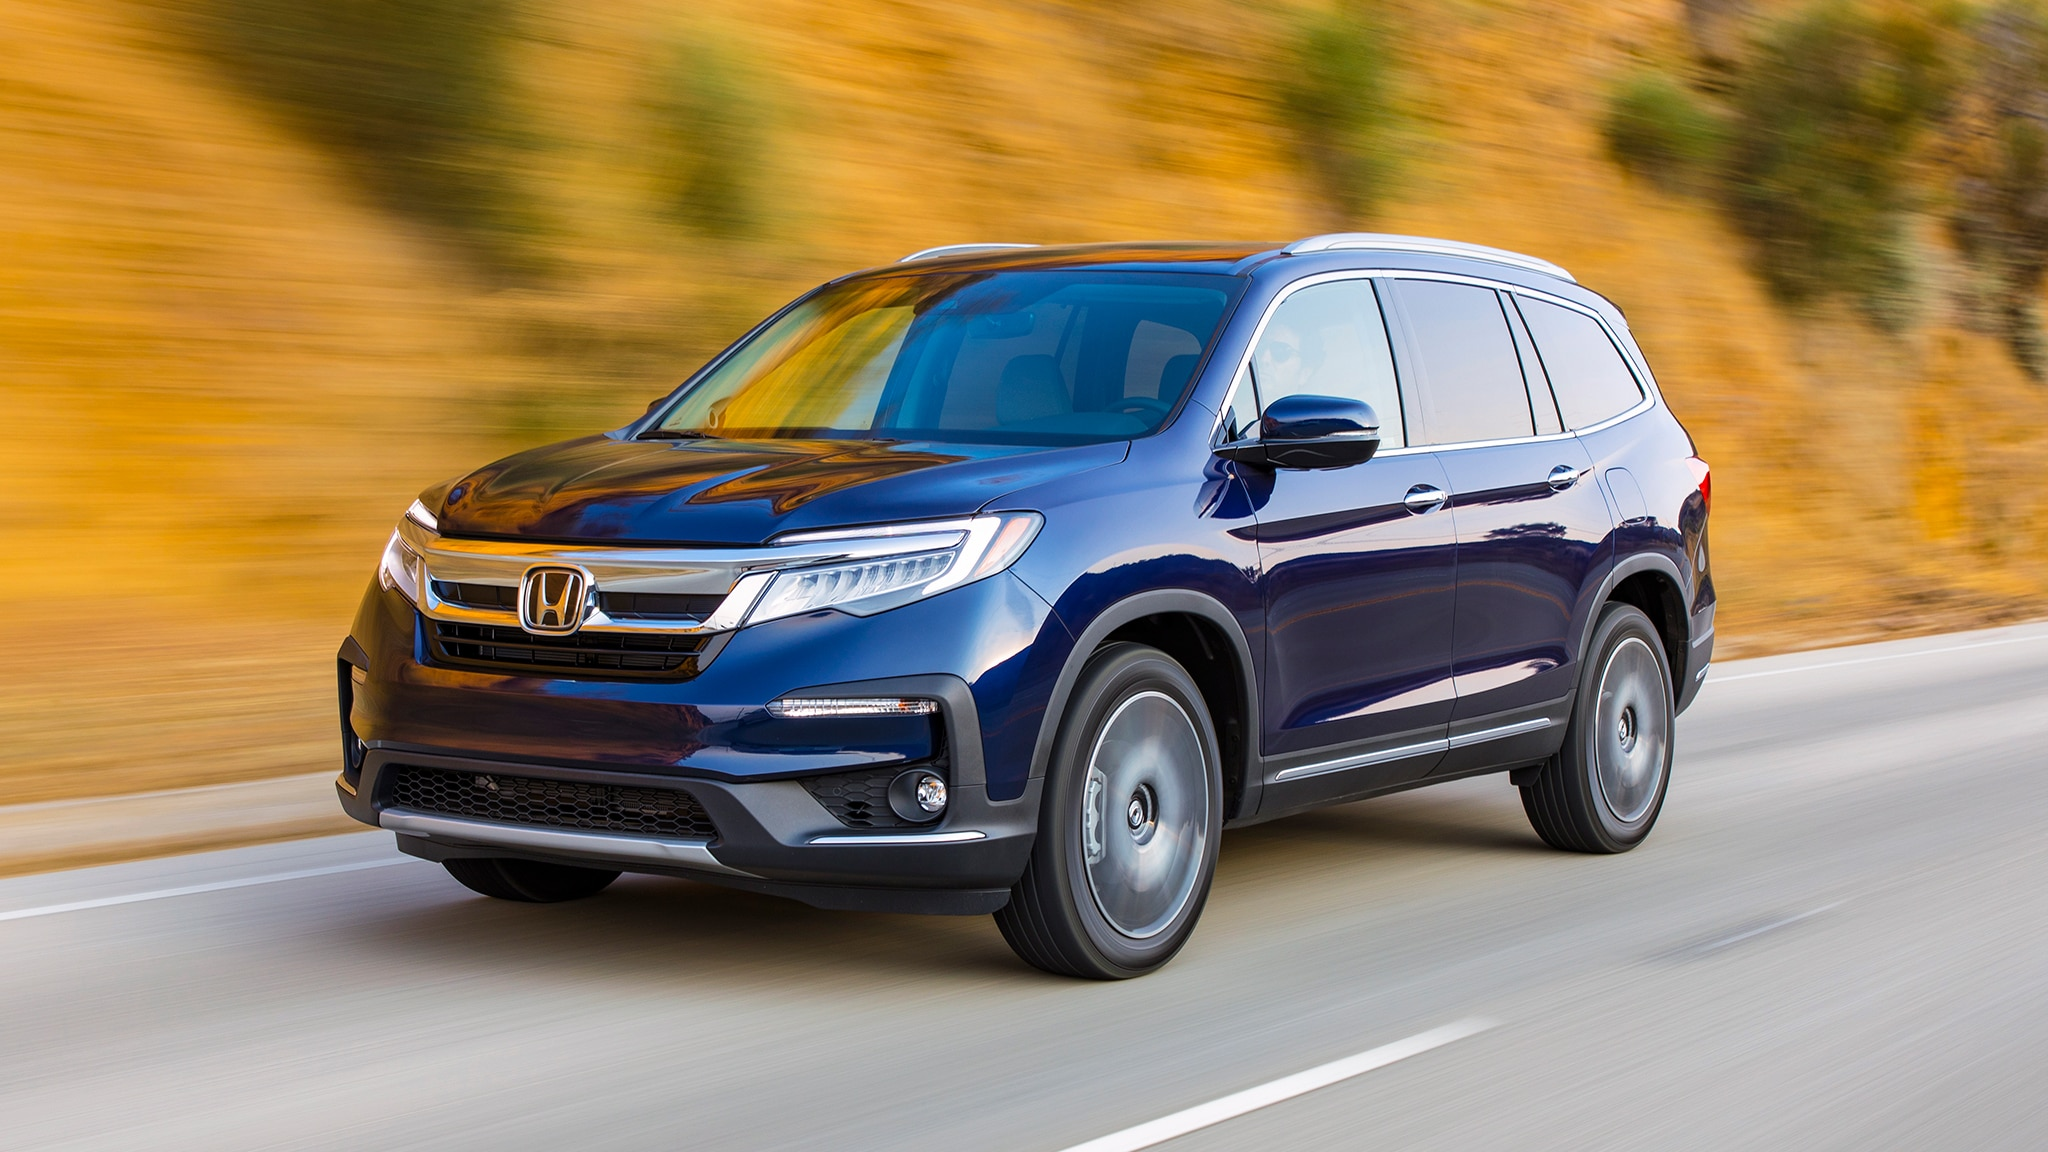 2019 Honda Pilot Front Three Quarter In Motion 4